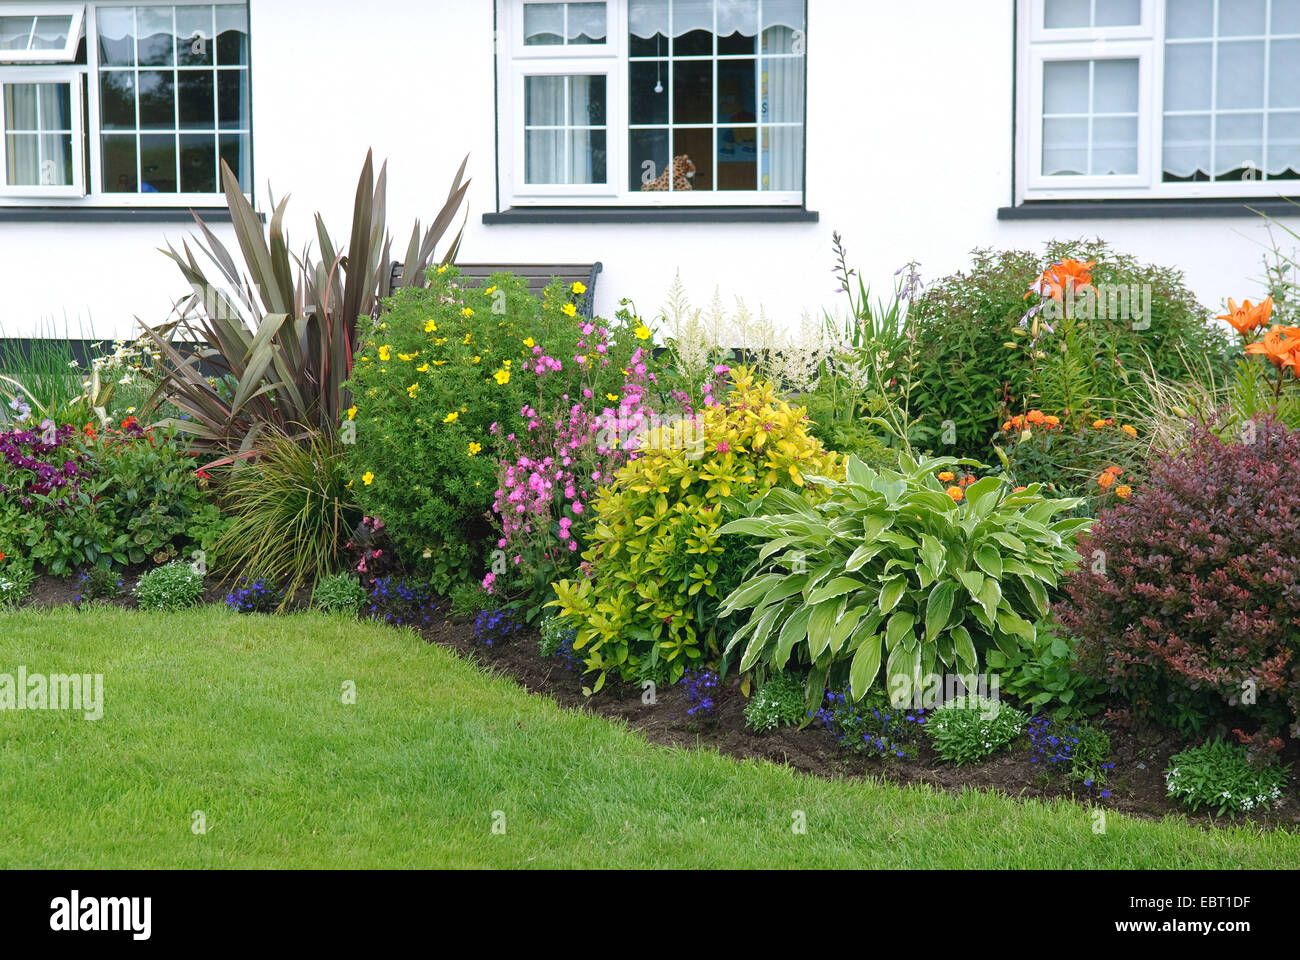 Irish frontgarden with blooming garden plants, Ireland, Achill Island - Stock Image